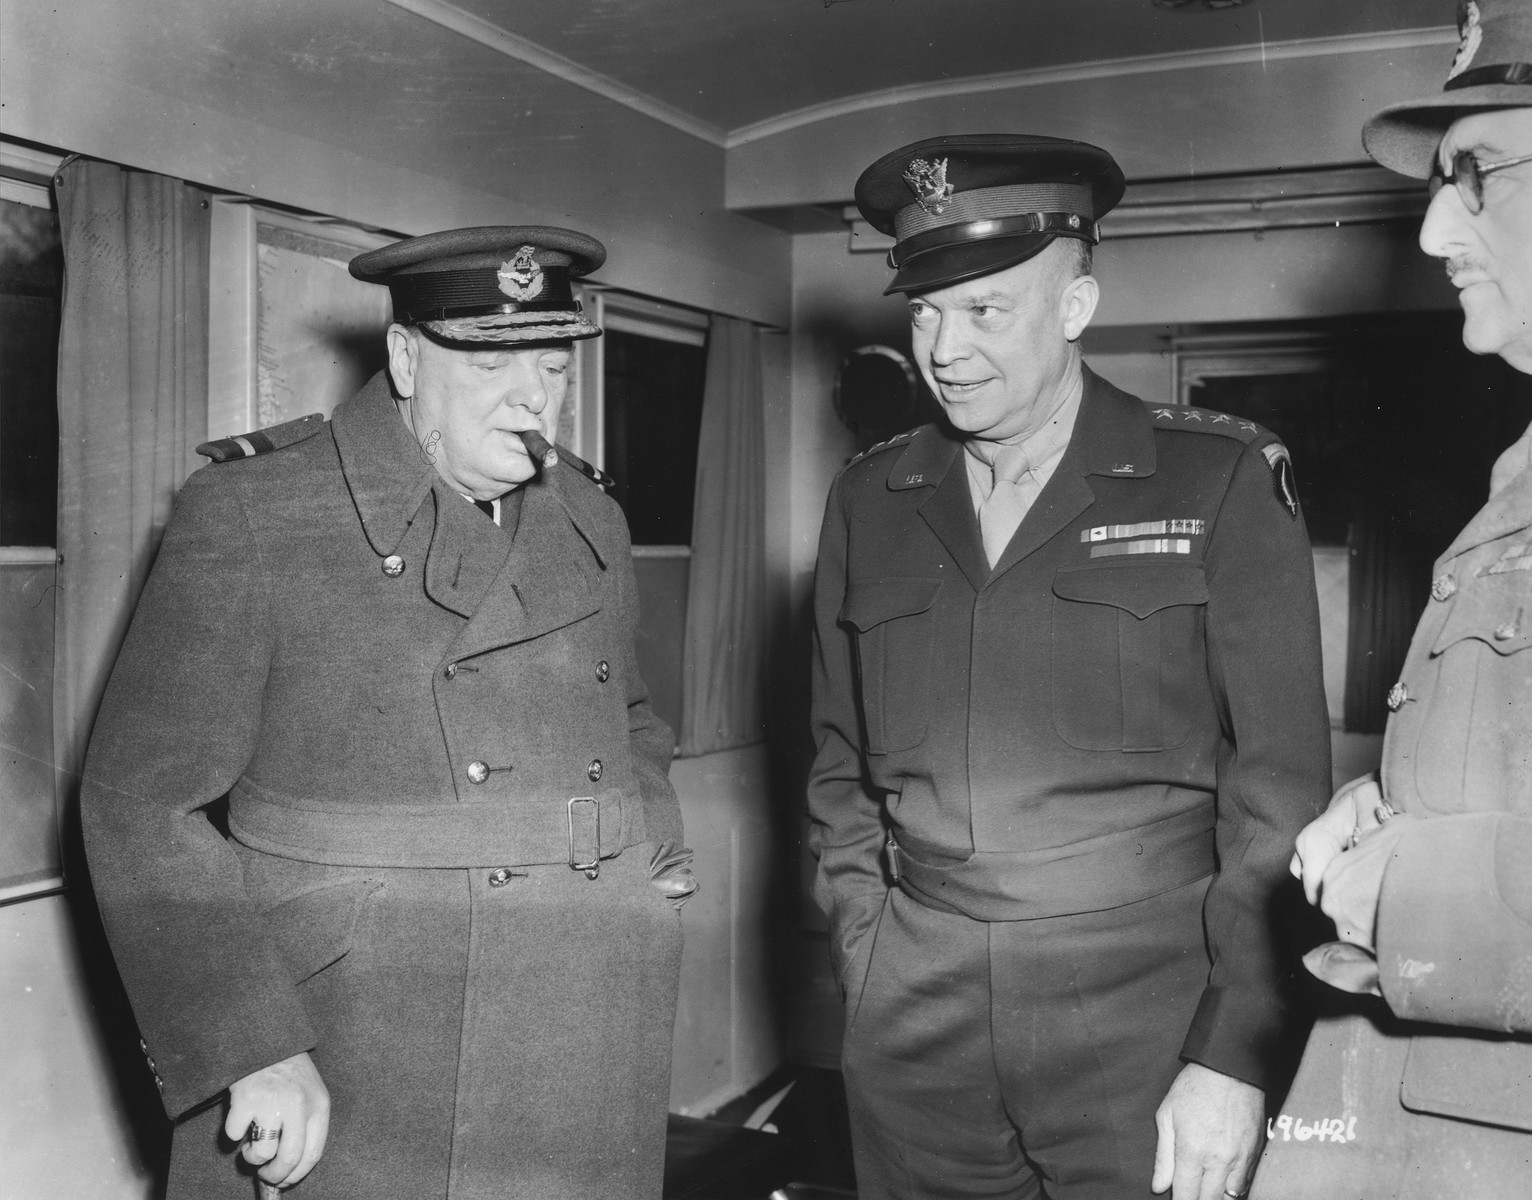 Prime Minister Winston Churchill and General Dwight D. Eisenhower confer on the progress of the war.